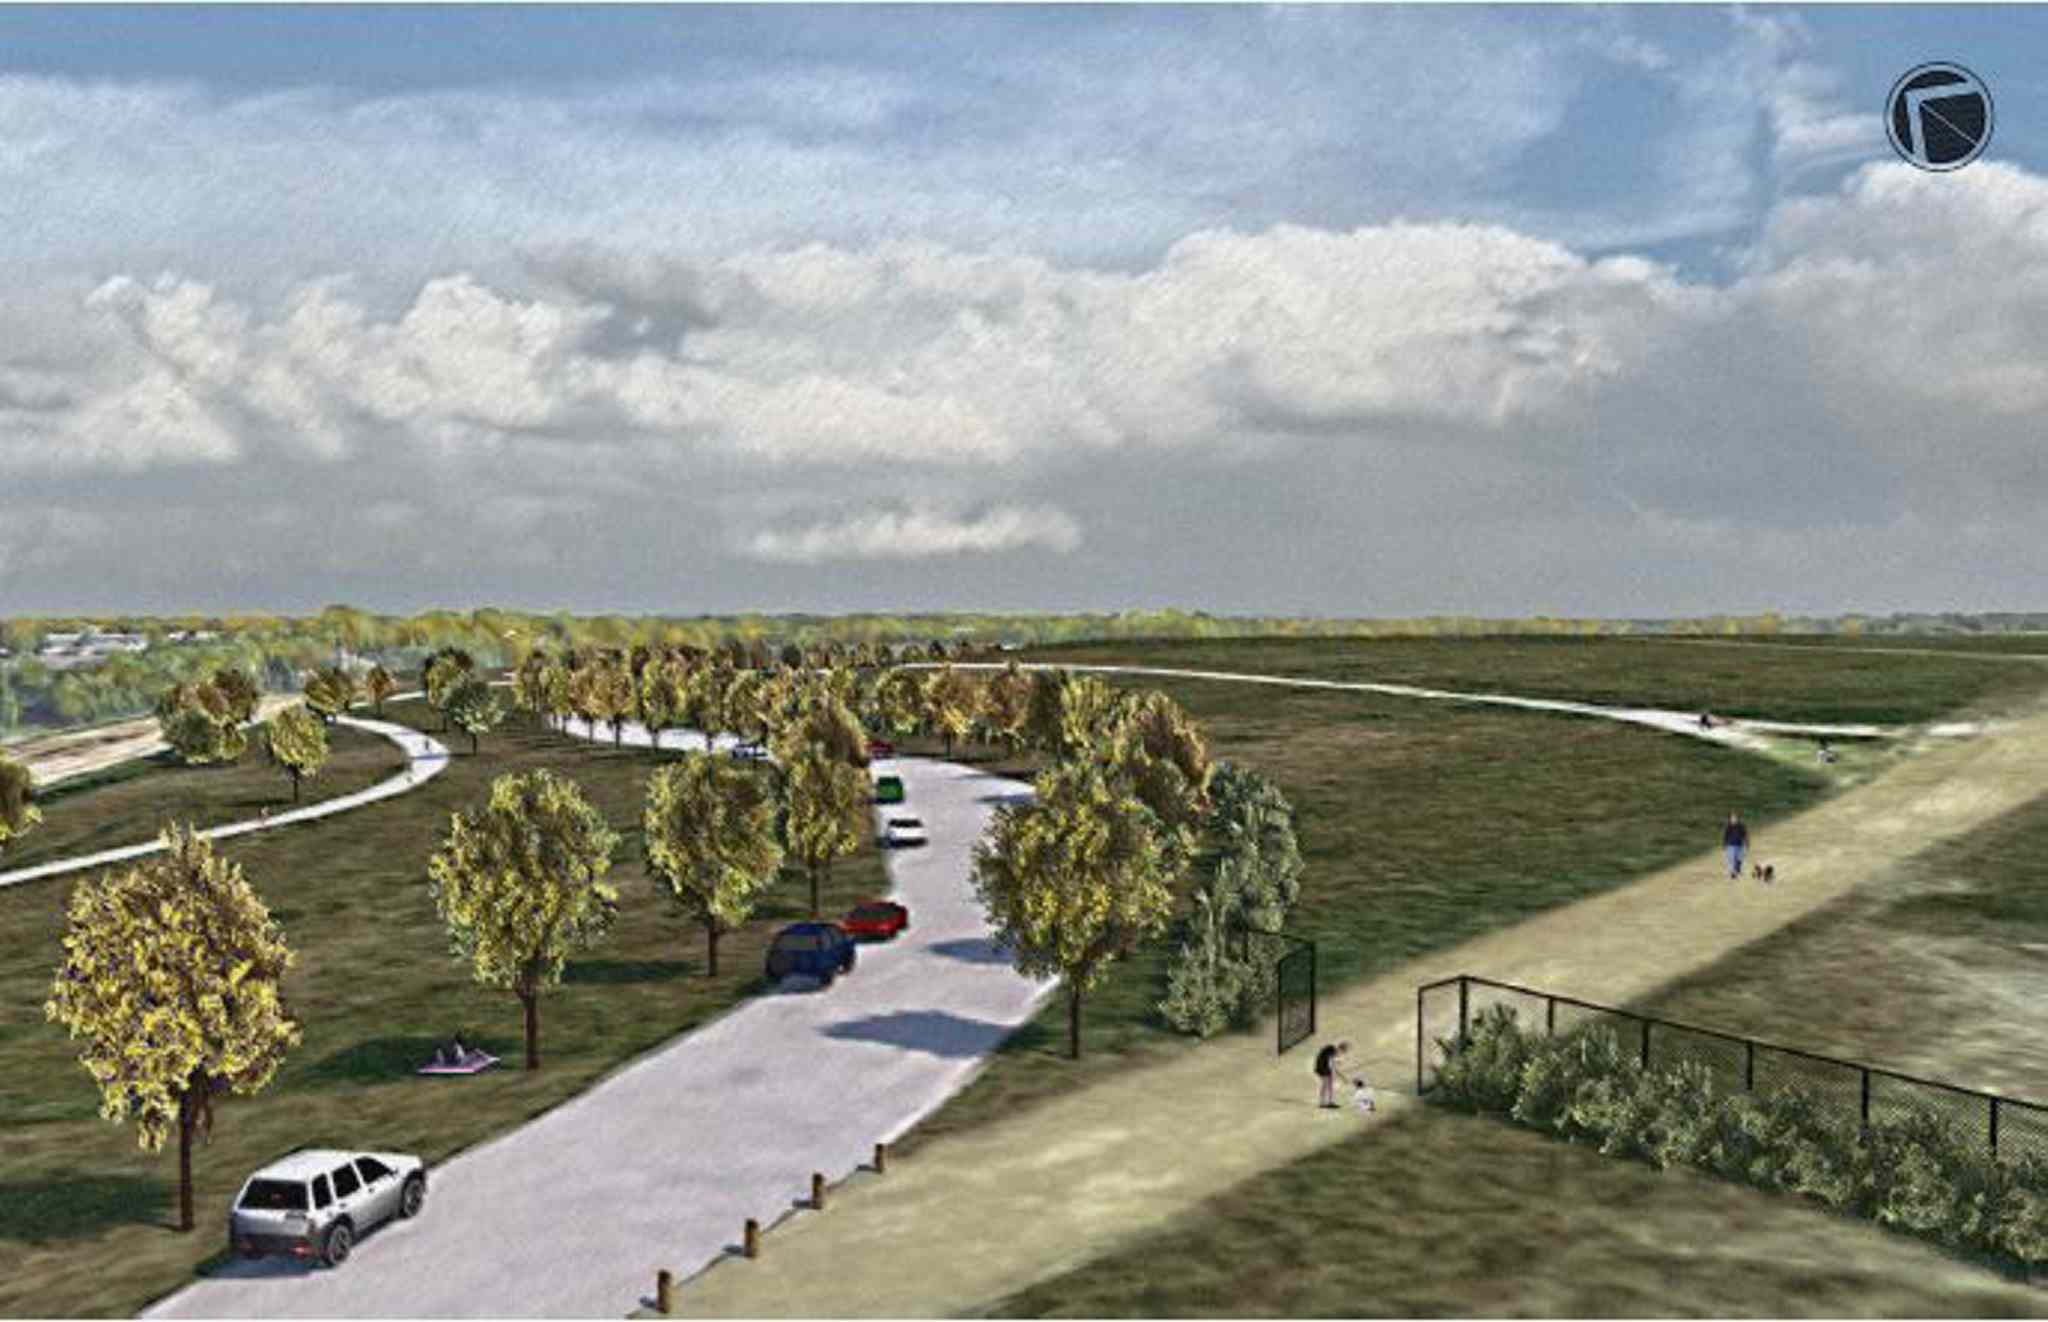 An artist's impression of the refurbished off-leash dog park at the redeveloped Kilcona Park.